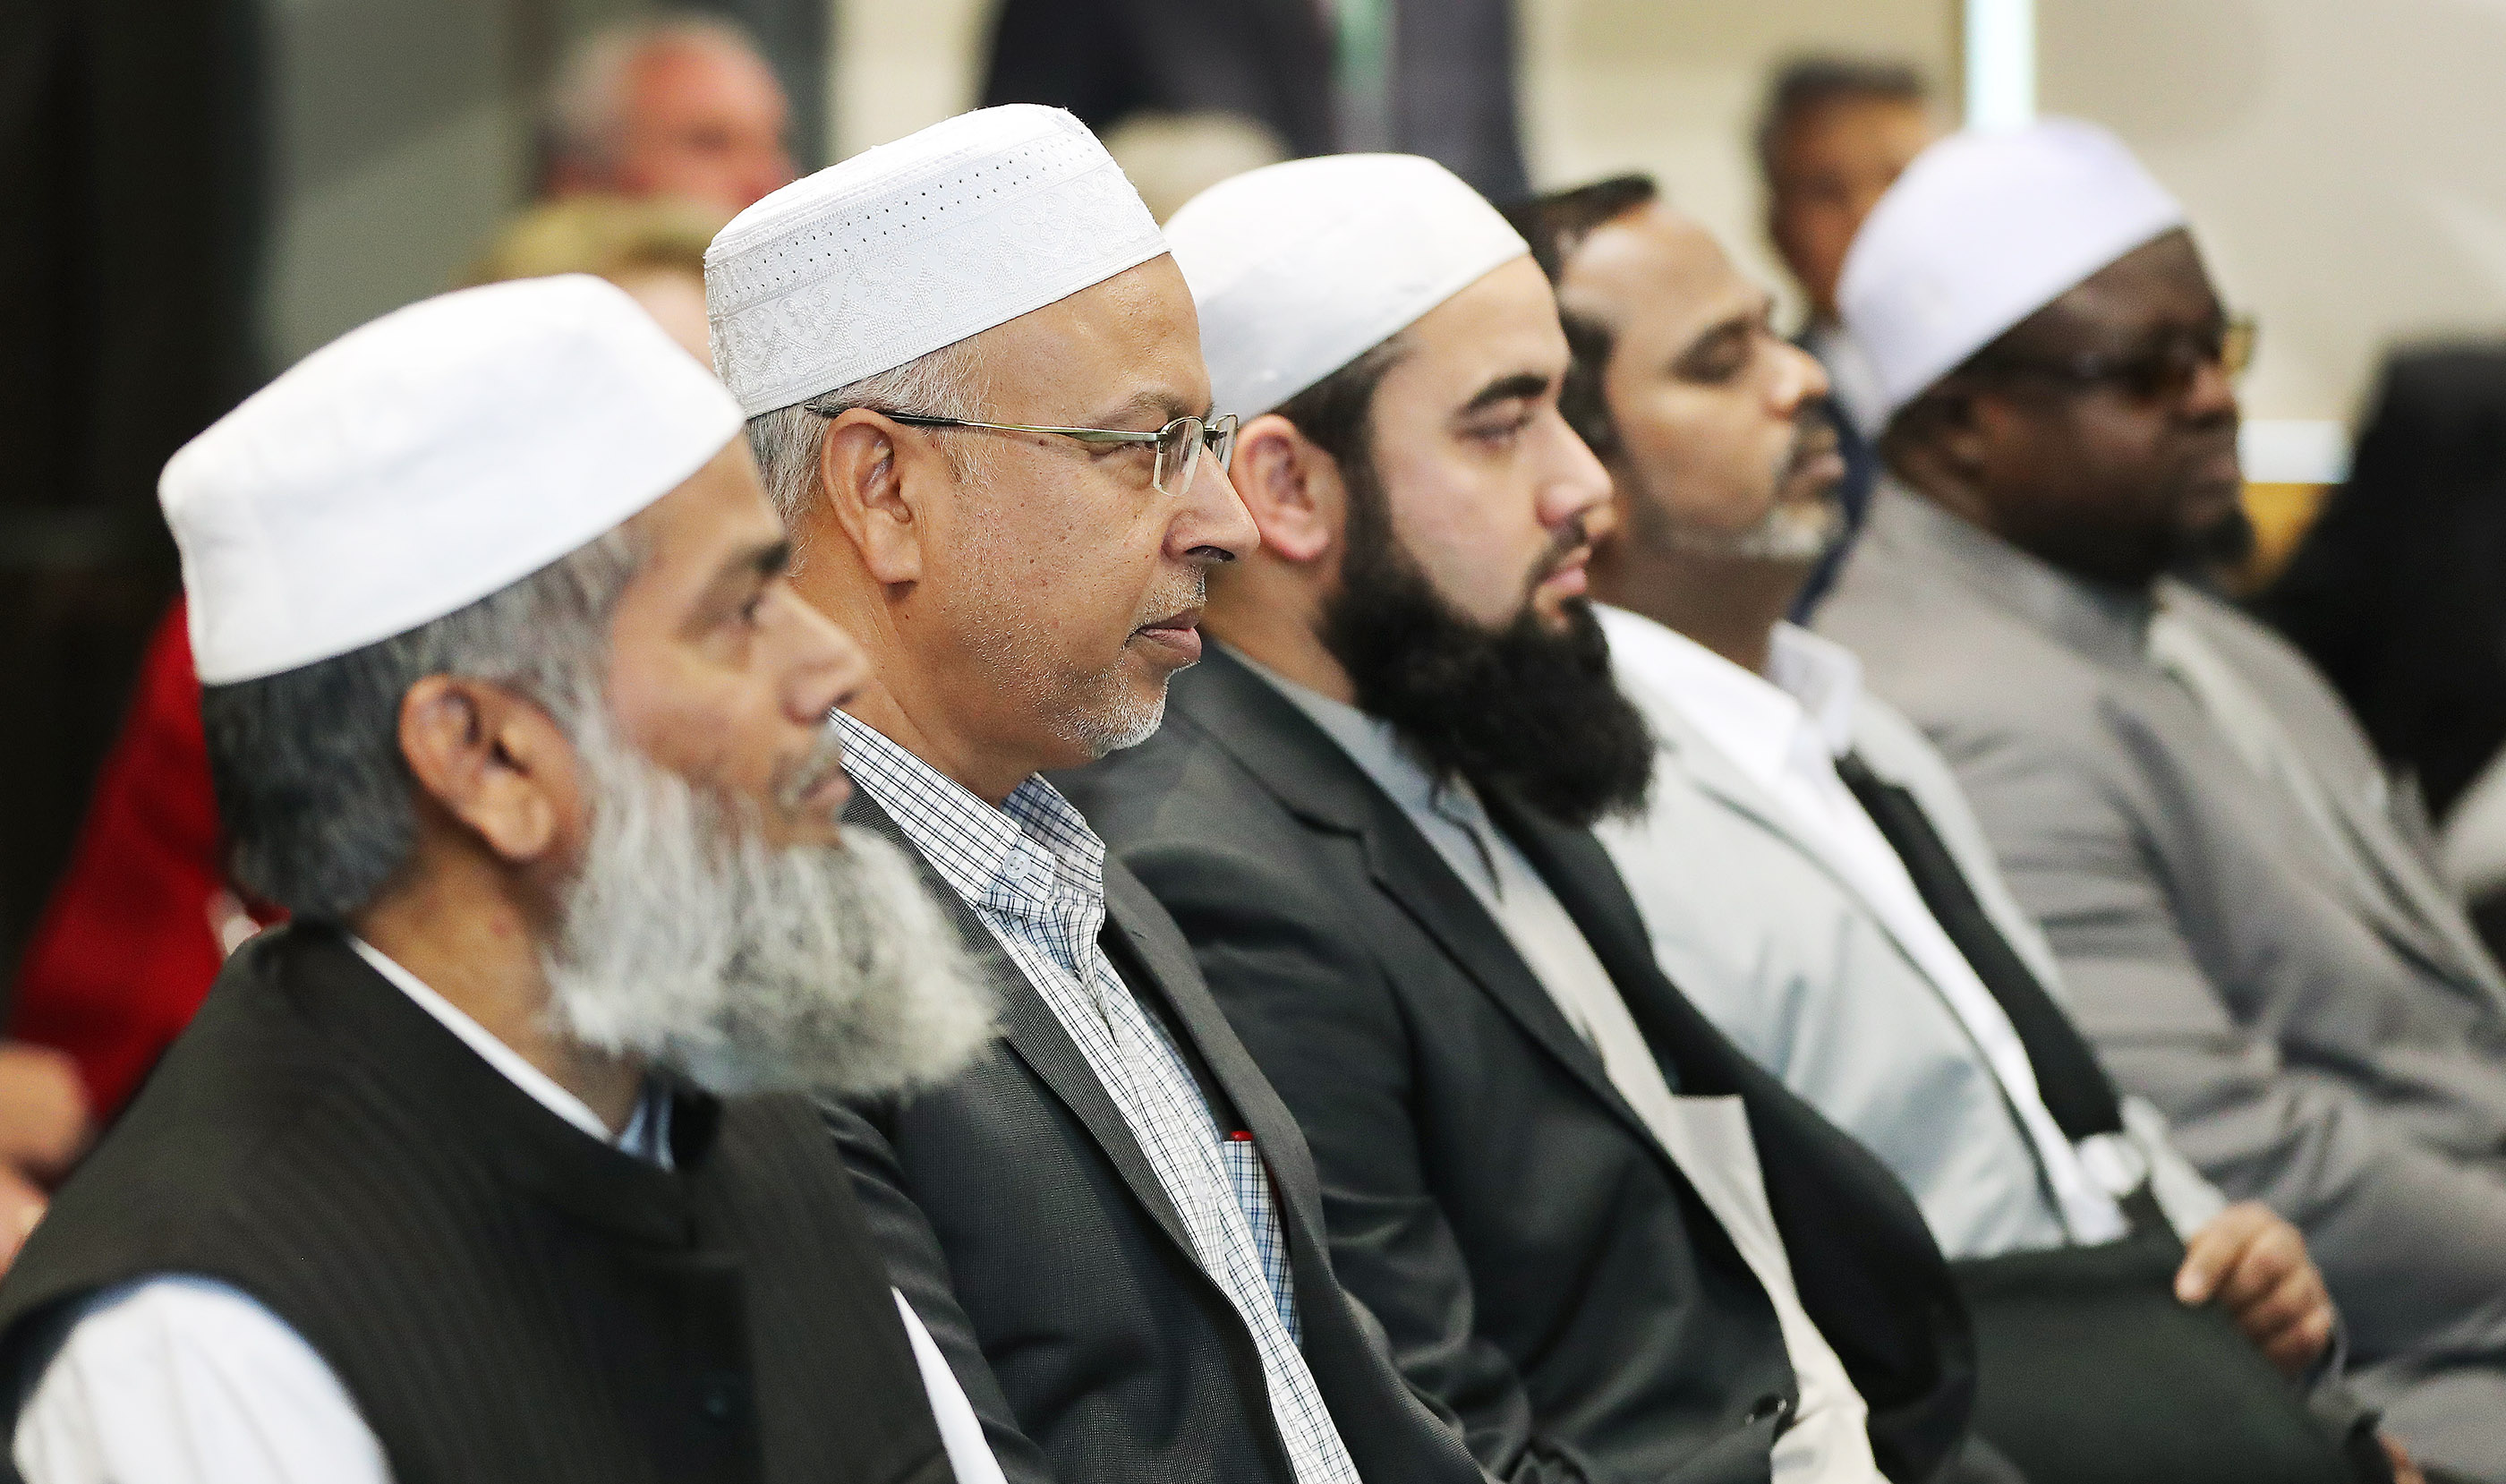 President Russell M. Nelson of The Church of Jesus Christ of Latter-day Saints meets with imams and a victim in Auckland, New Zealand, on May 21, 2019, from two mosques that were recently attacked. Two imams represented the Al Noor and Linwood mosques, where innocent worshippers were gunned down March 15 in Christchurch.